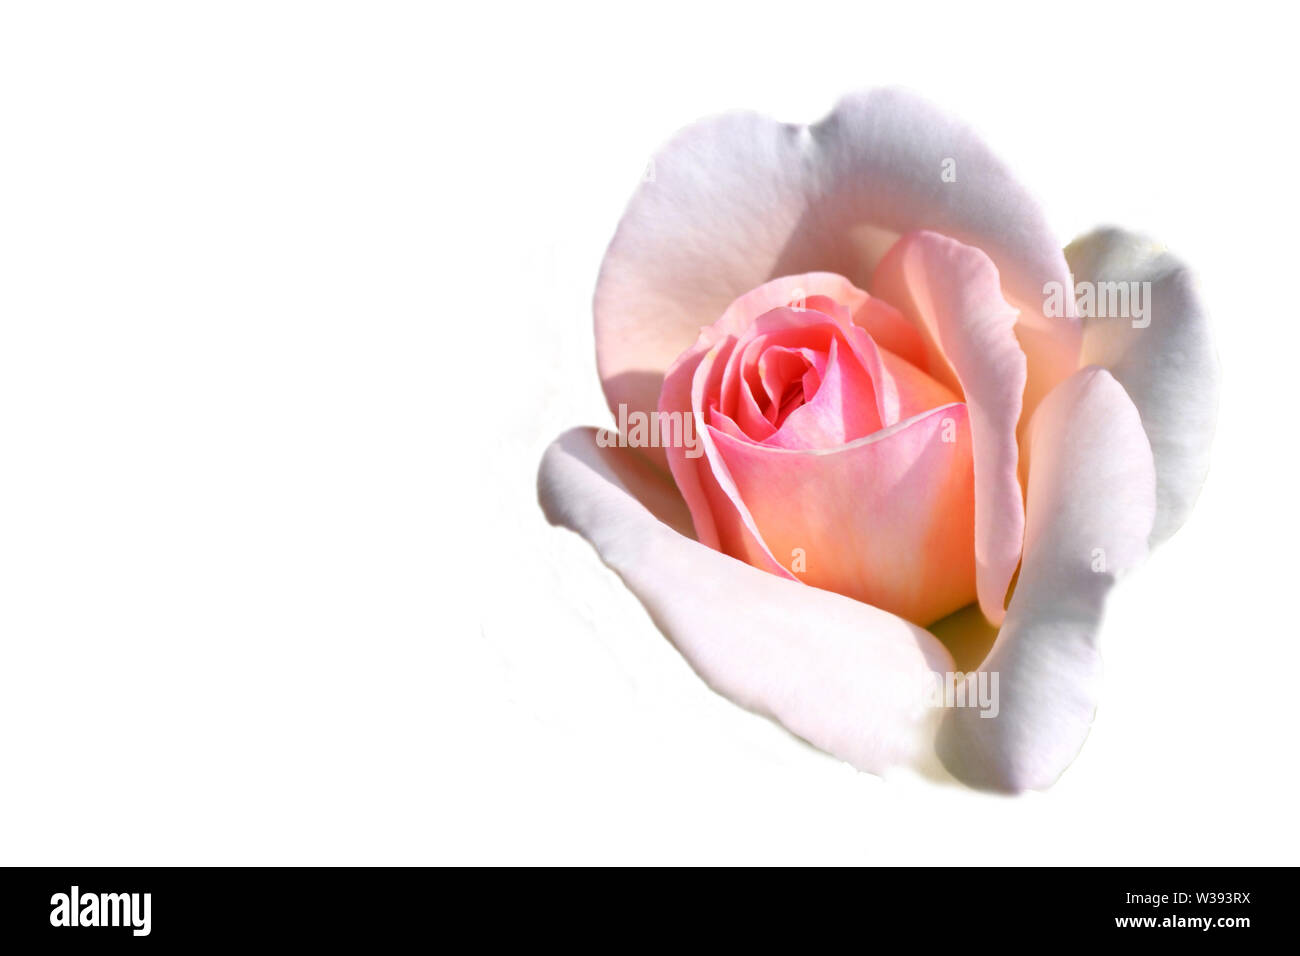 Greeting card with pink rose image on the right side on white background and copyspace for writing. Stock Photo